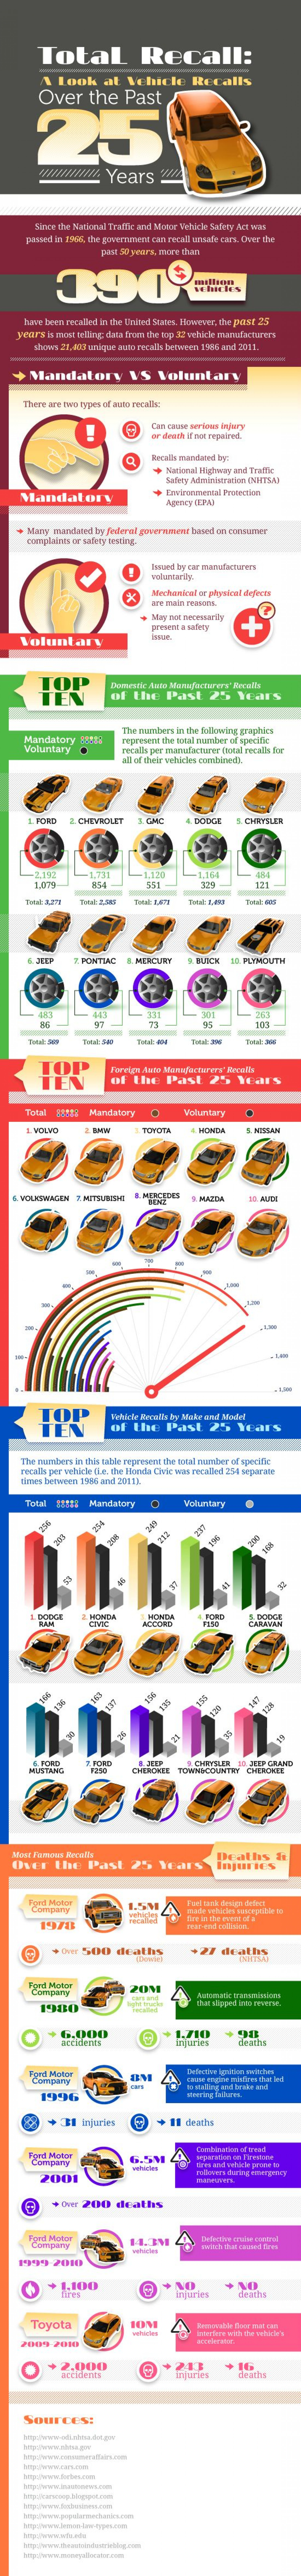 Top 10 Auto Recalls Infographic